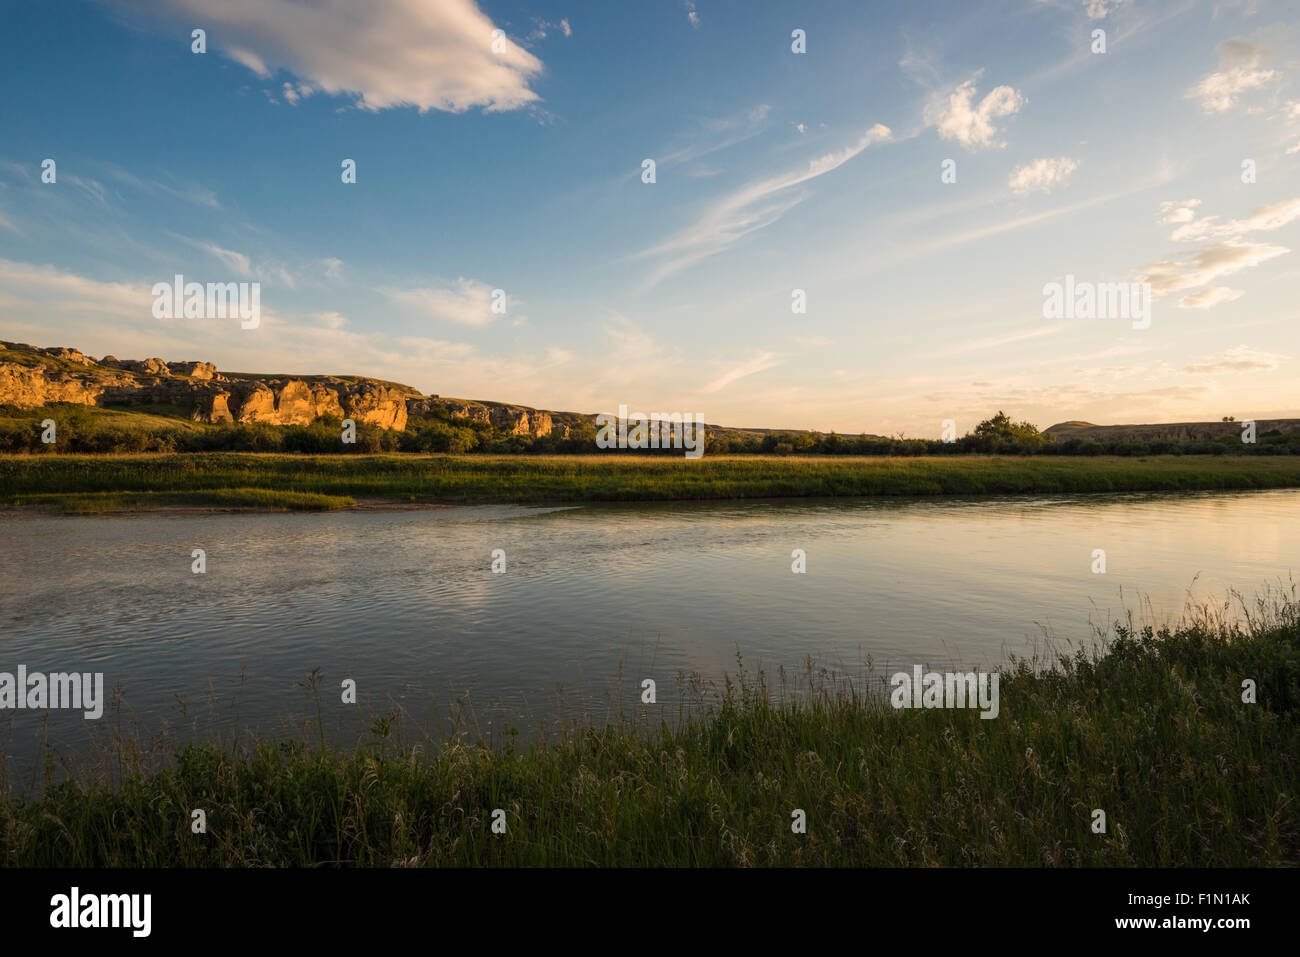 dusk-view-of-the-milk-river-flowing-thro